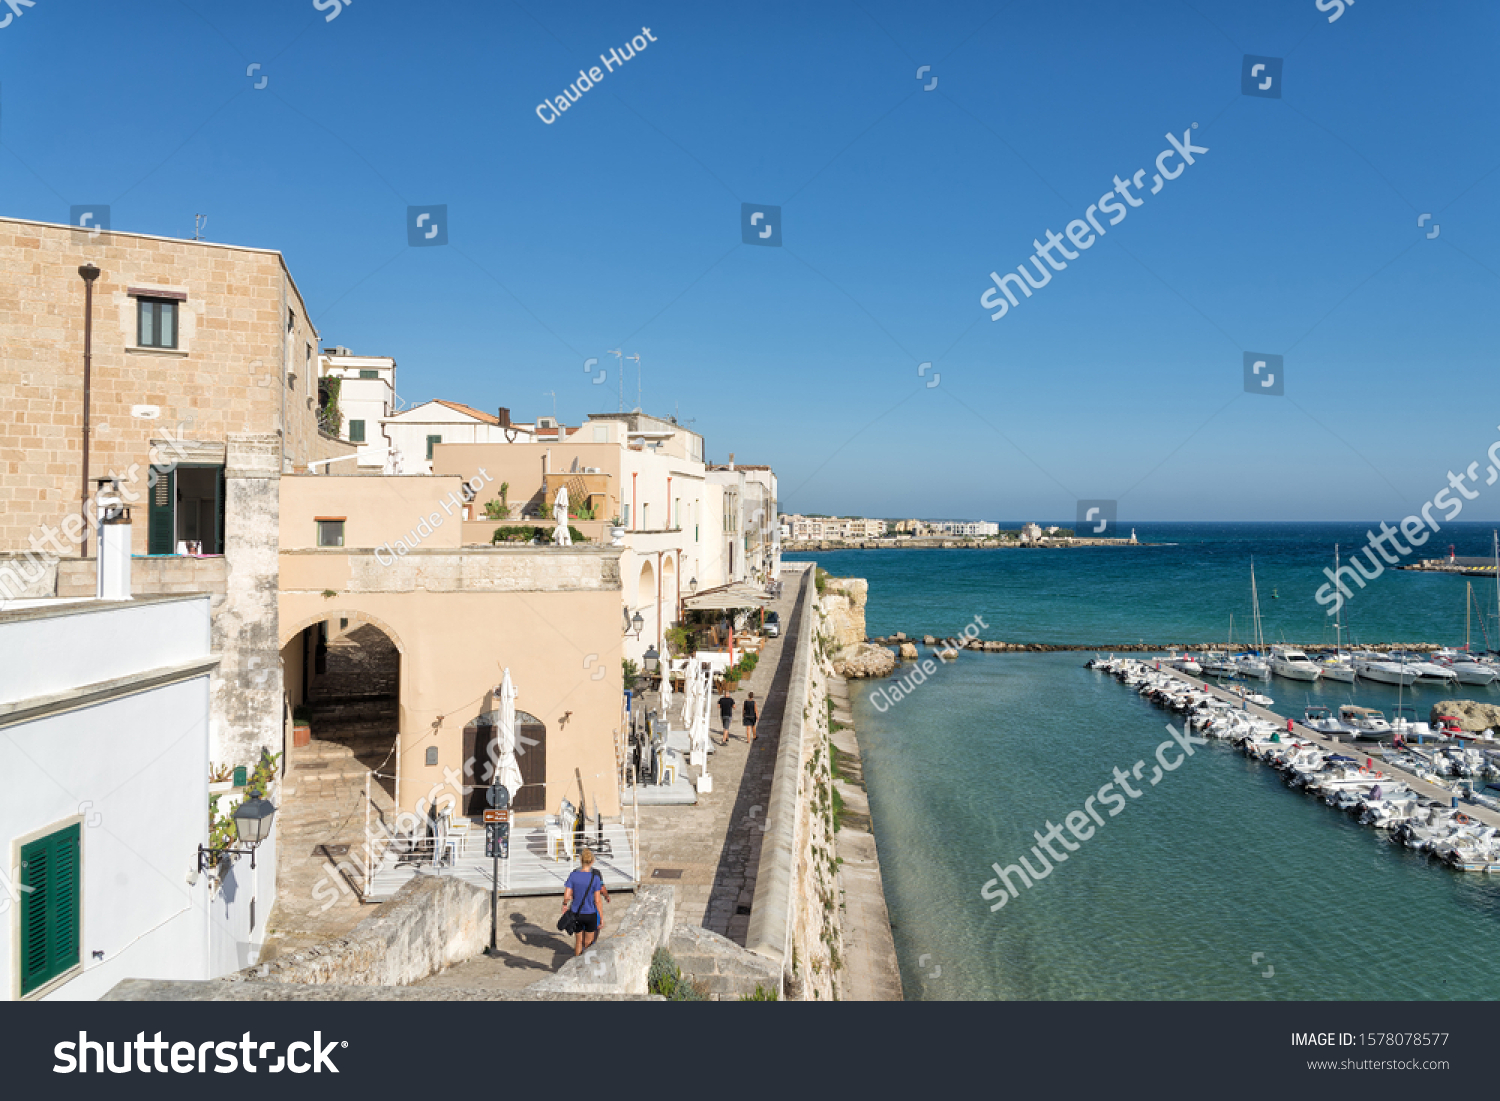 OTRANTO, APULIA, ITALY - SEPTEMBER 14, 2019: The seaside city of Otranto, with its architecture, sea-side promenades and restaurants, port for pleasure boats, make this town very popular for tourists.